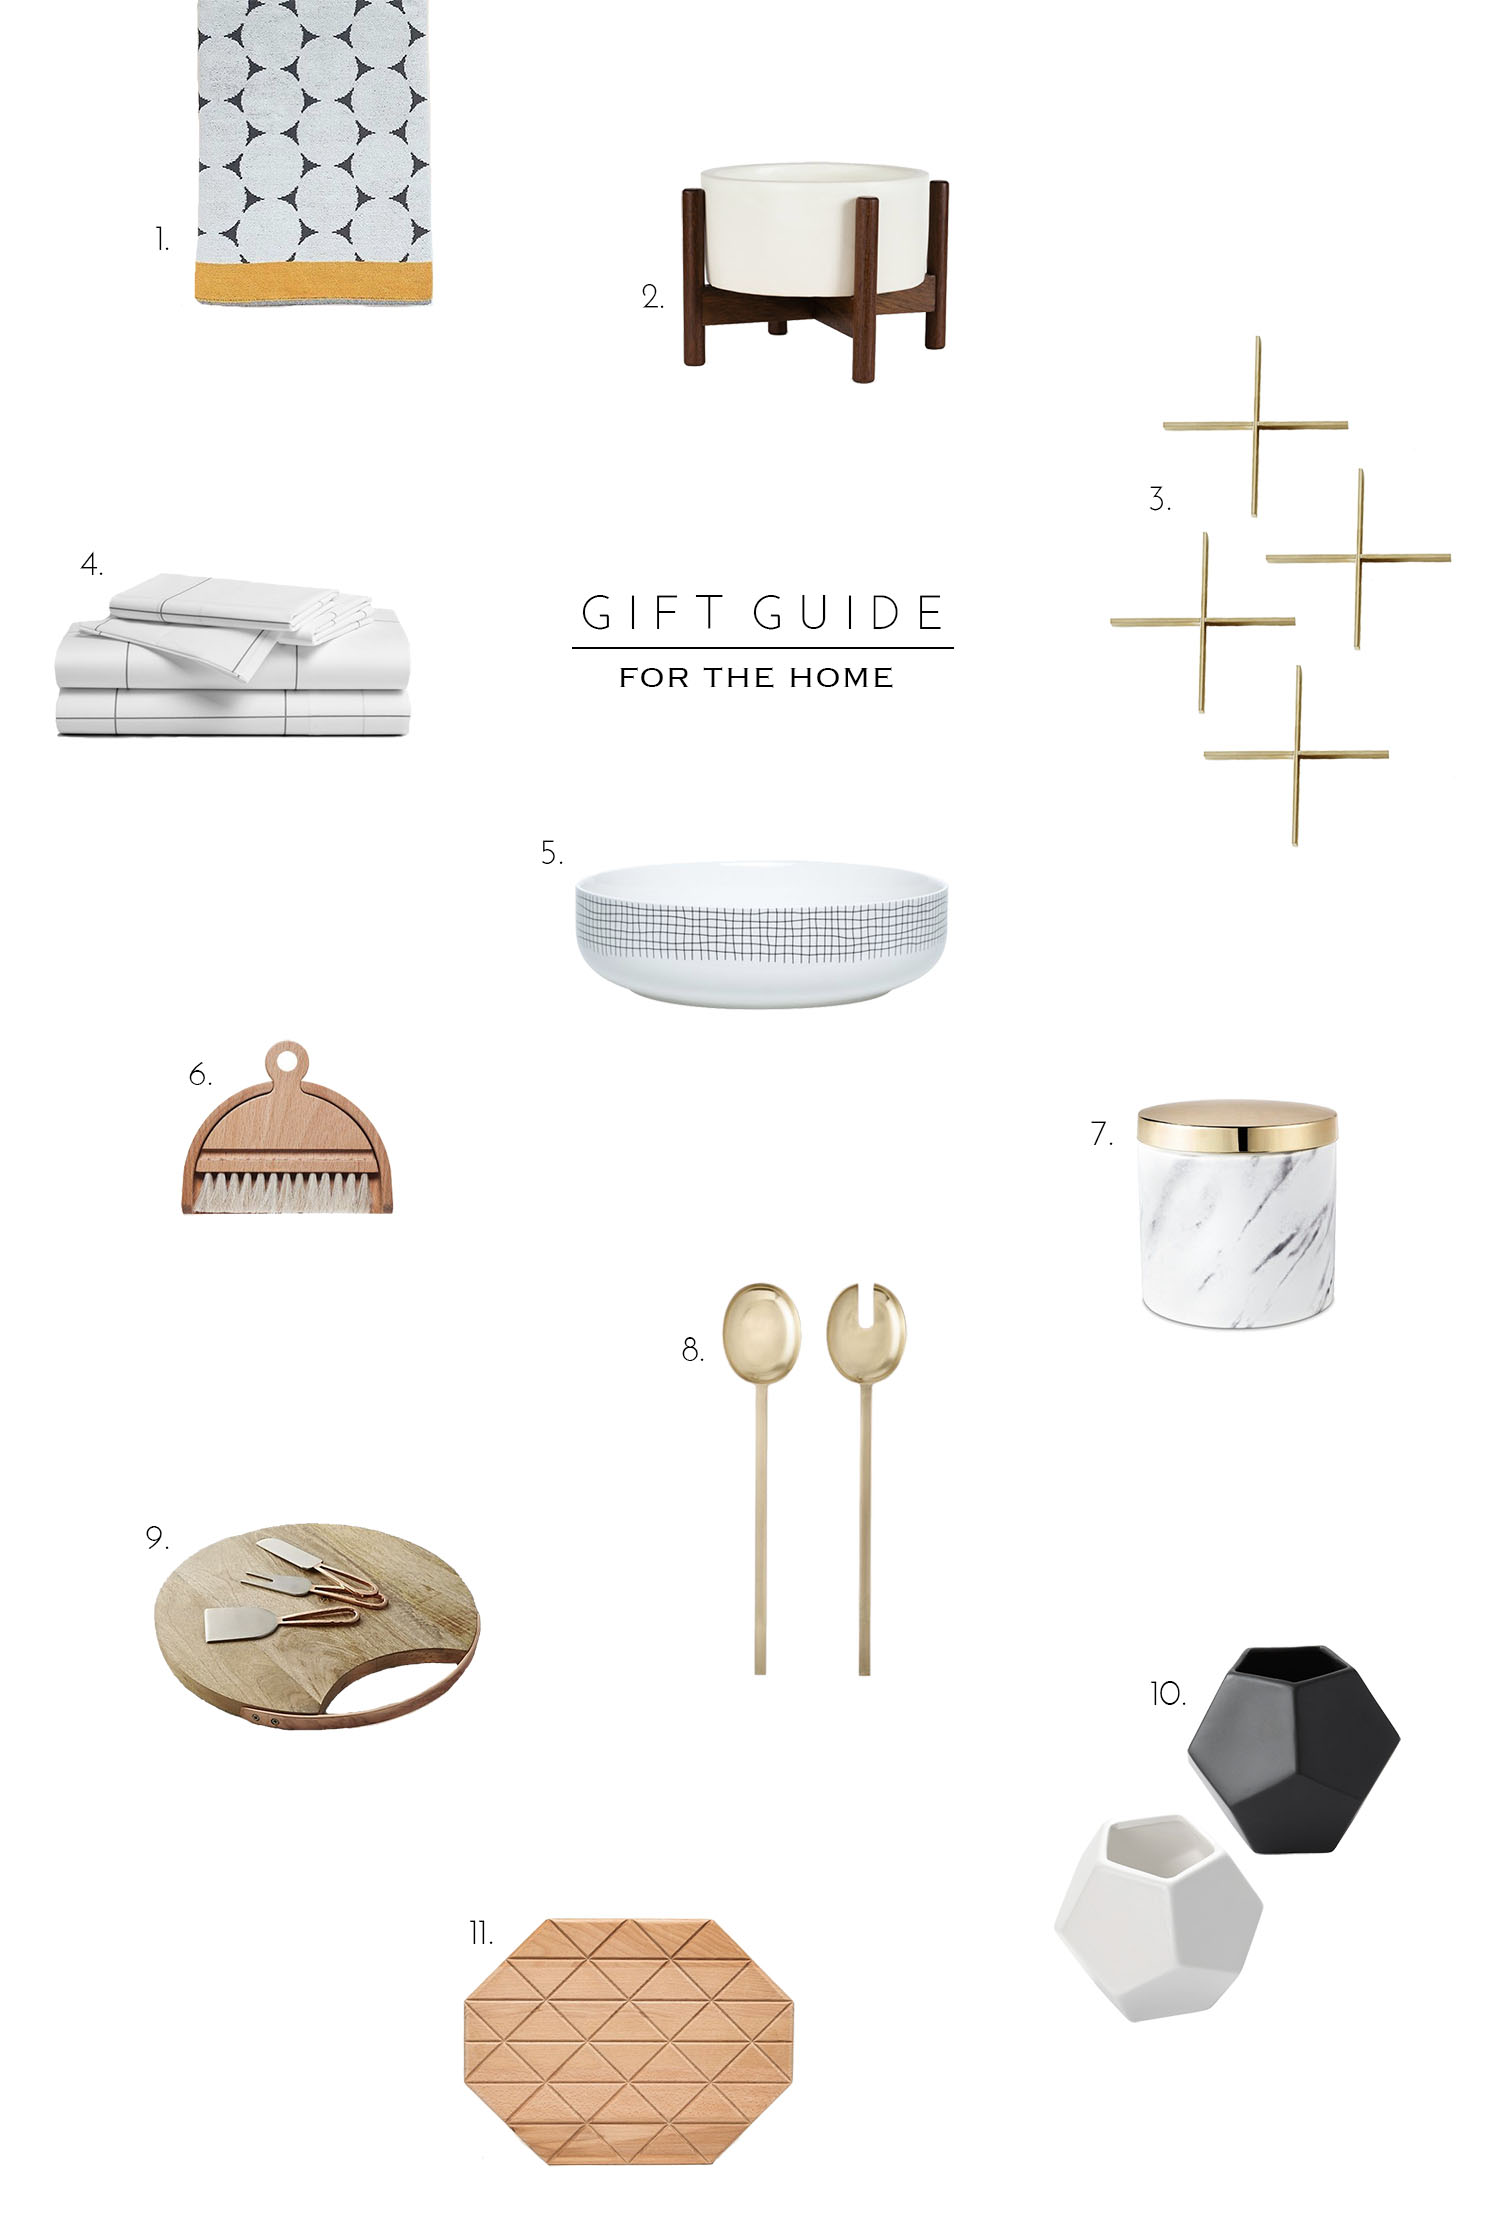 gift guide for the home